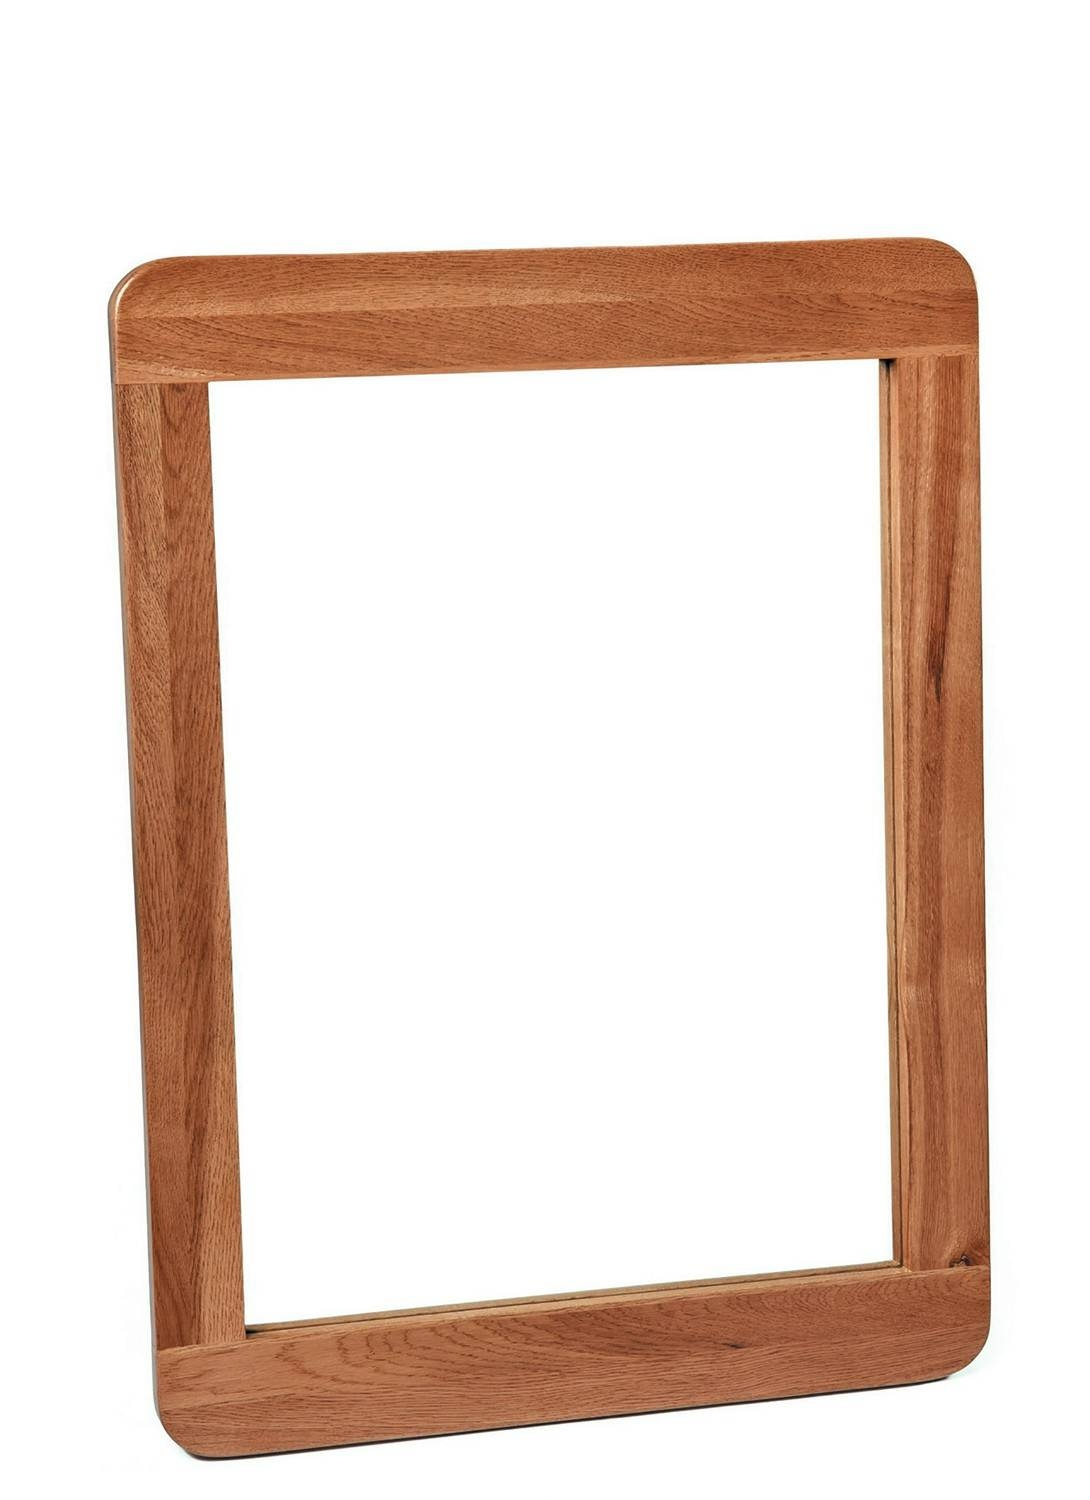 London Dark Oak Wall Mirror - Wall Mirrors - Living Room | Hallowood intended for Oak Wall Mirrors (Image 5 of 15)